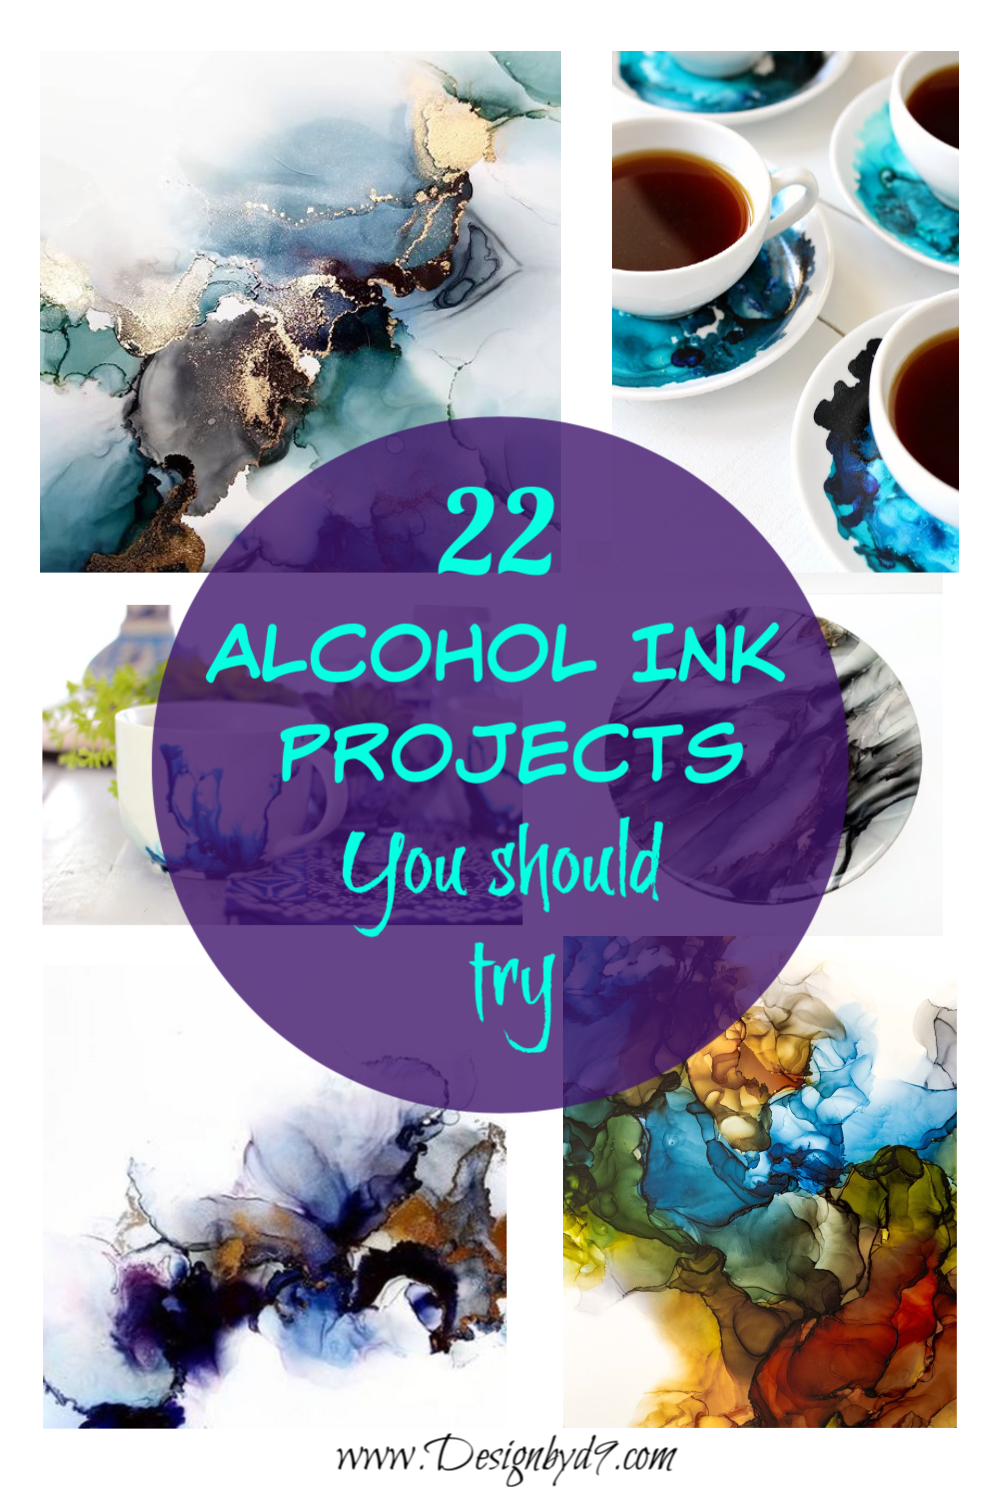 Are you looking for something creative to try that doesn't require a lot of skill or setup? Why not try out alcohol ink? You can use it on a lot of diverse surfaces. Come and check out some project ideas.